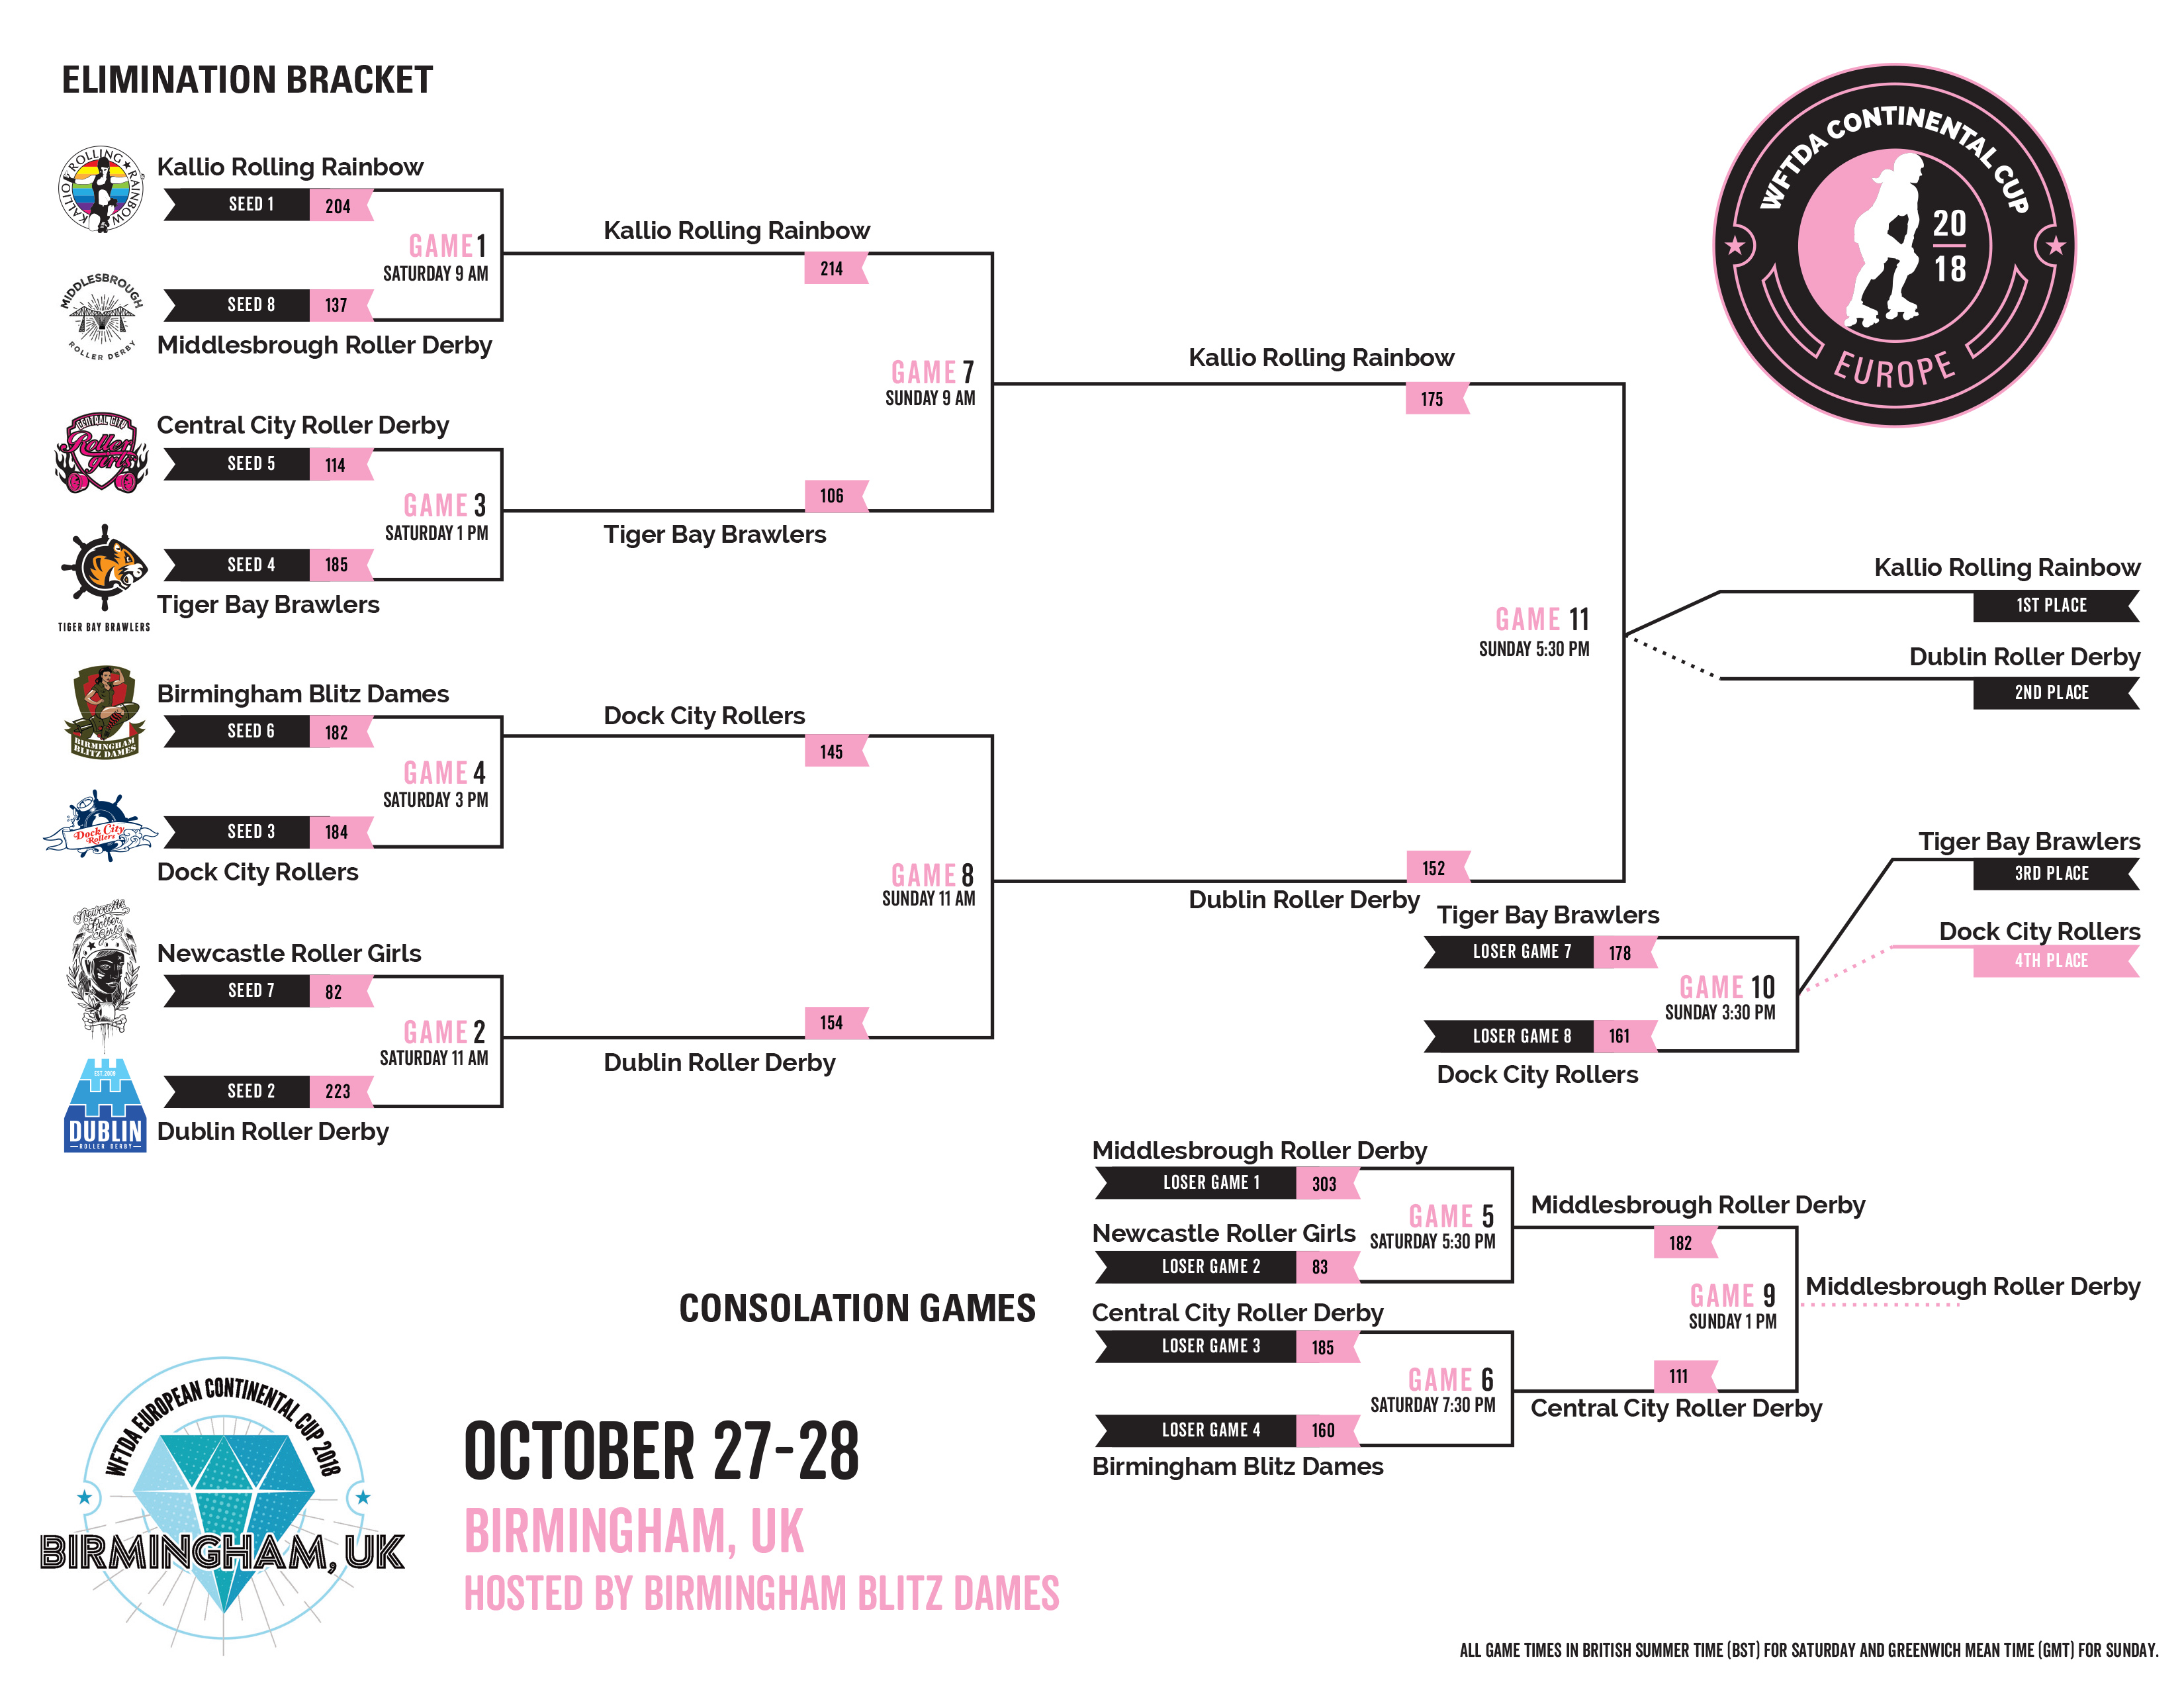 2018 WFTDA Continental Cup - Europe